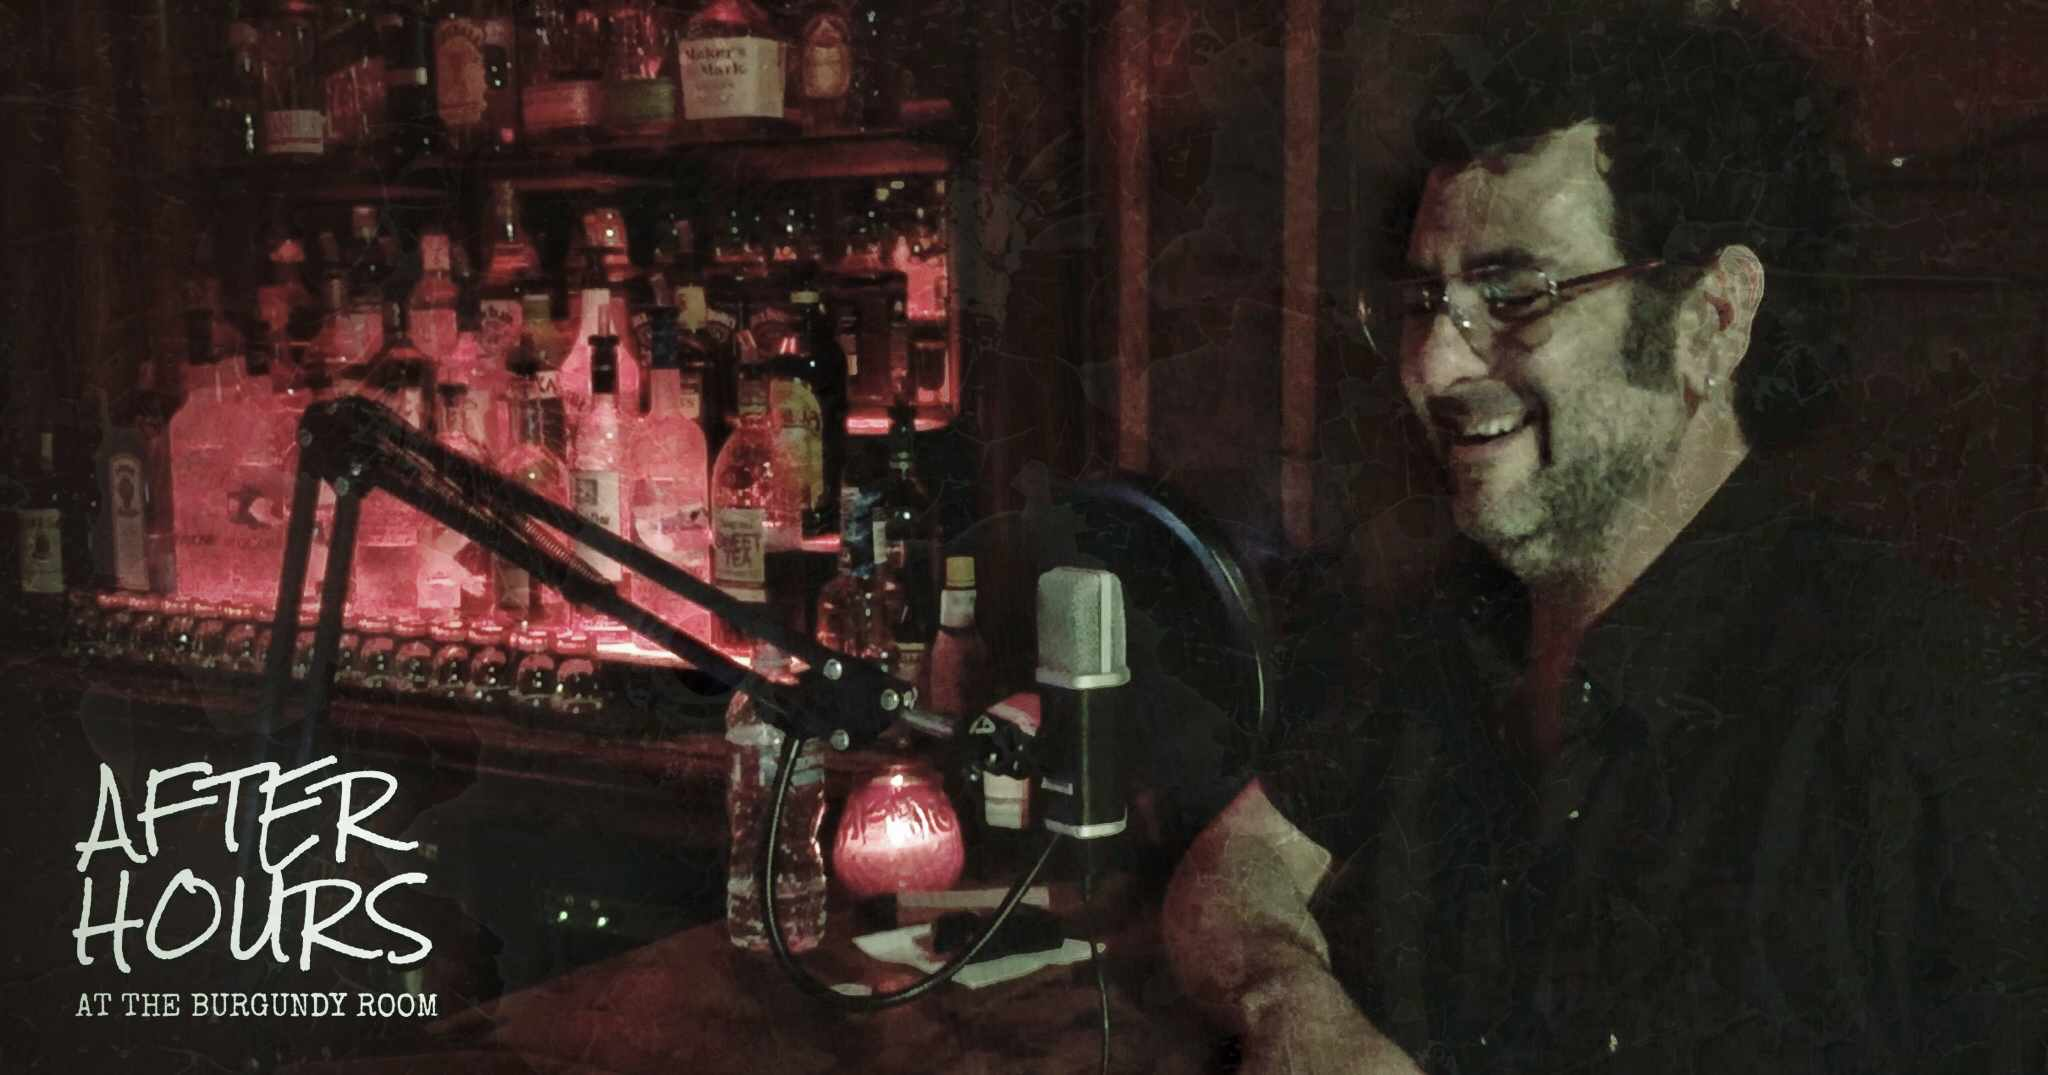 Bruce Witkin - After Hours at the Burgundy Room | Episode 5